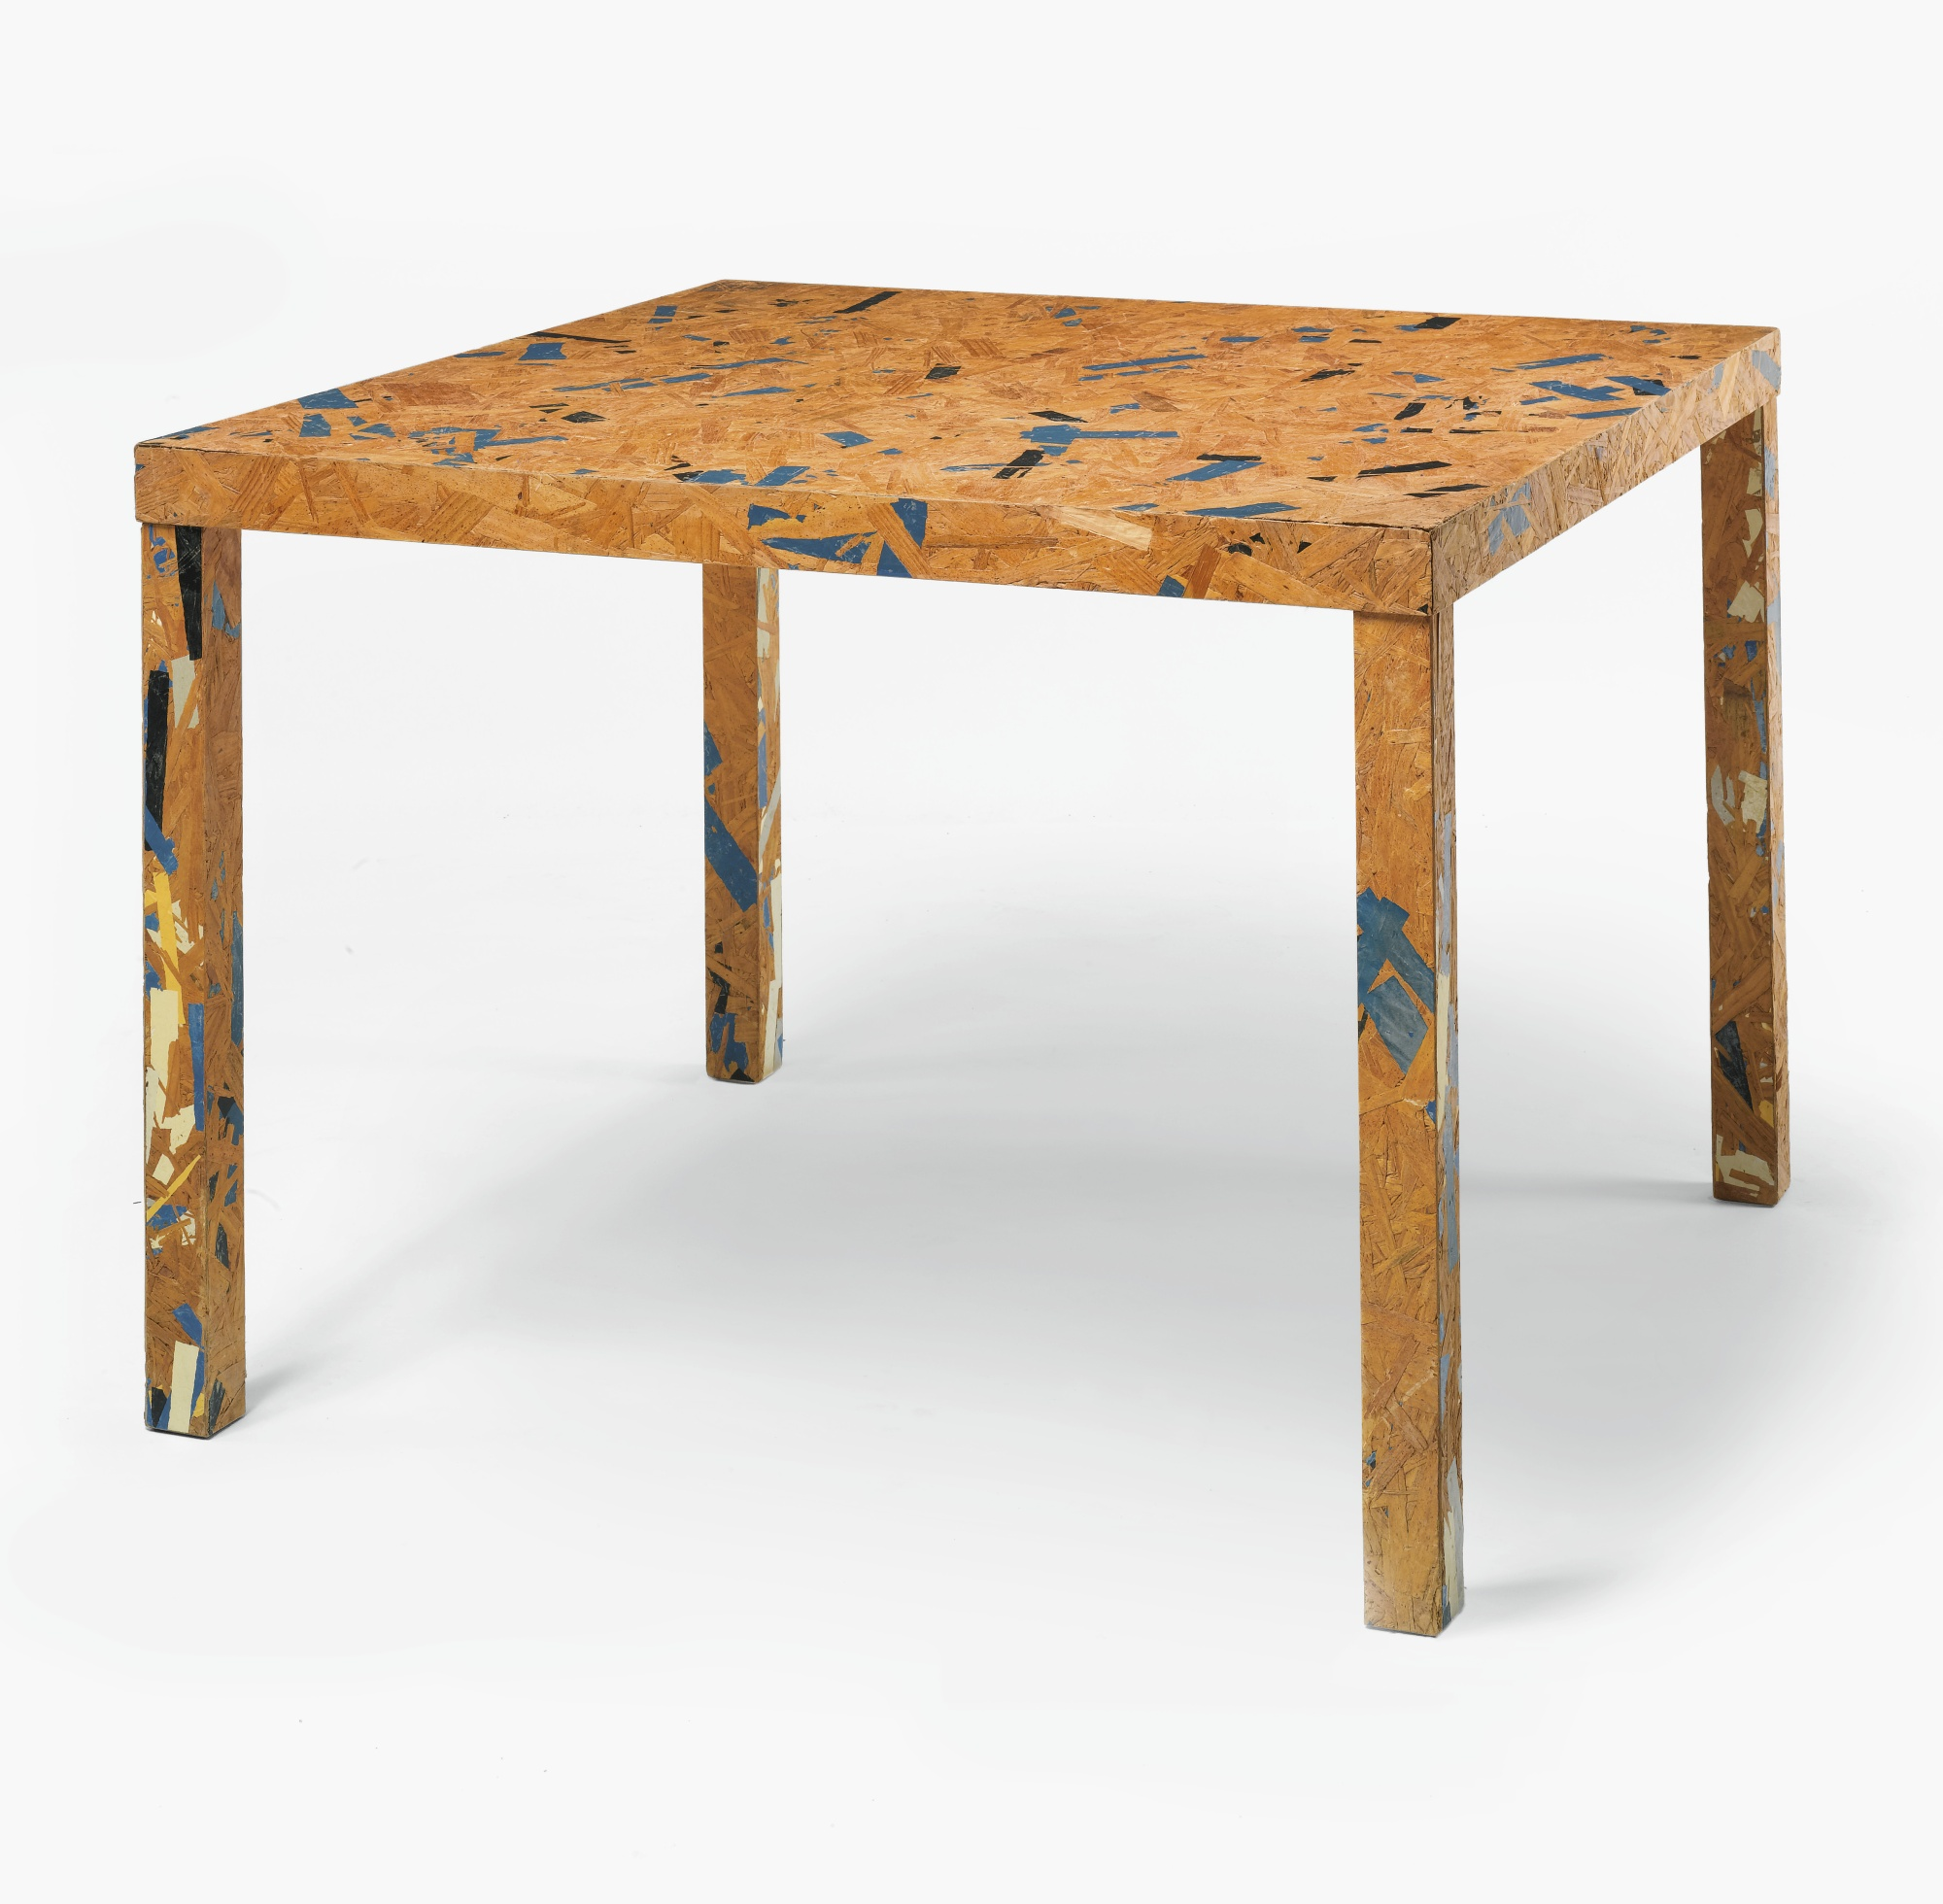 Fernando and Humberto Campana - Celia Center Table-2004